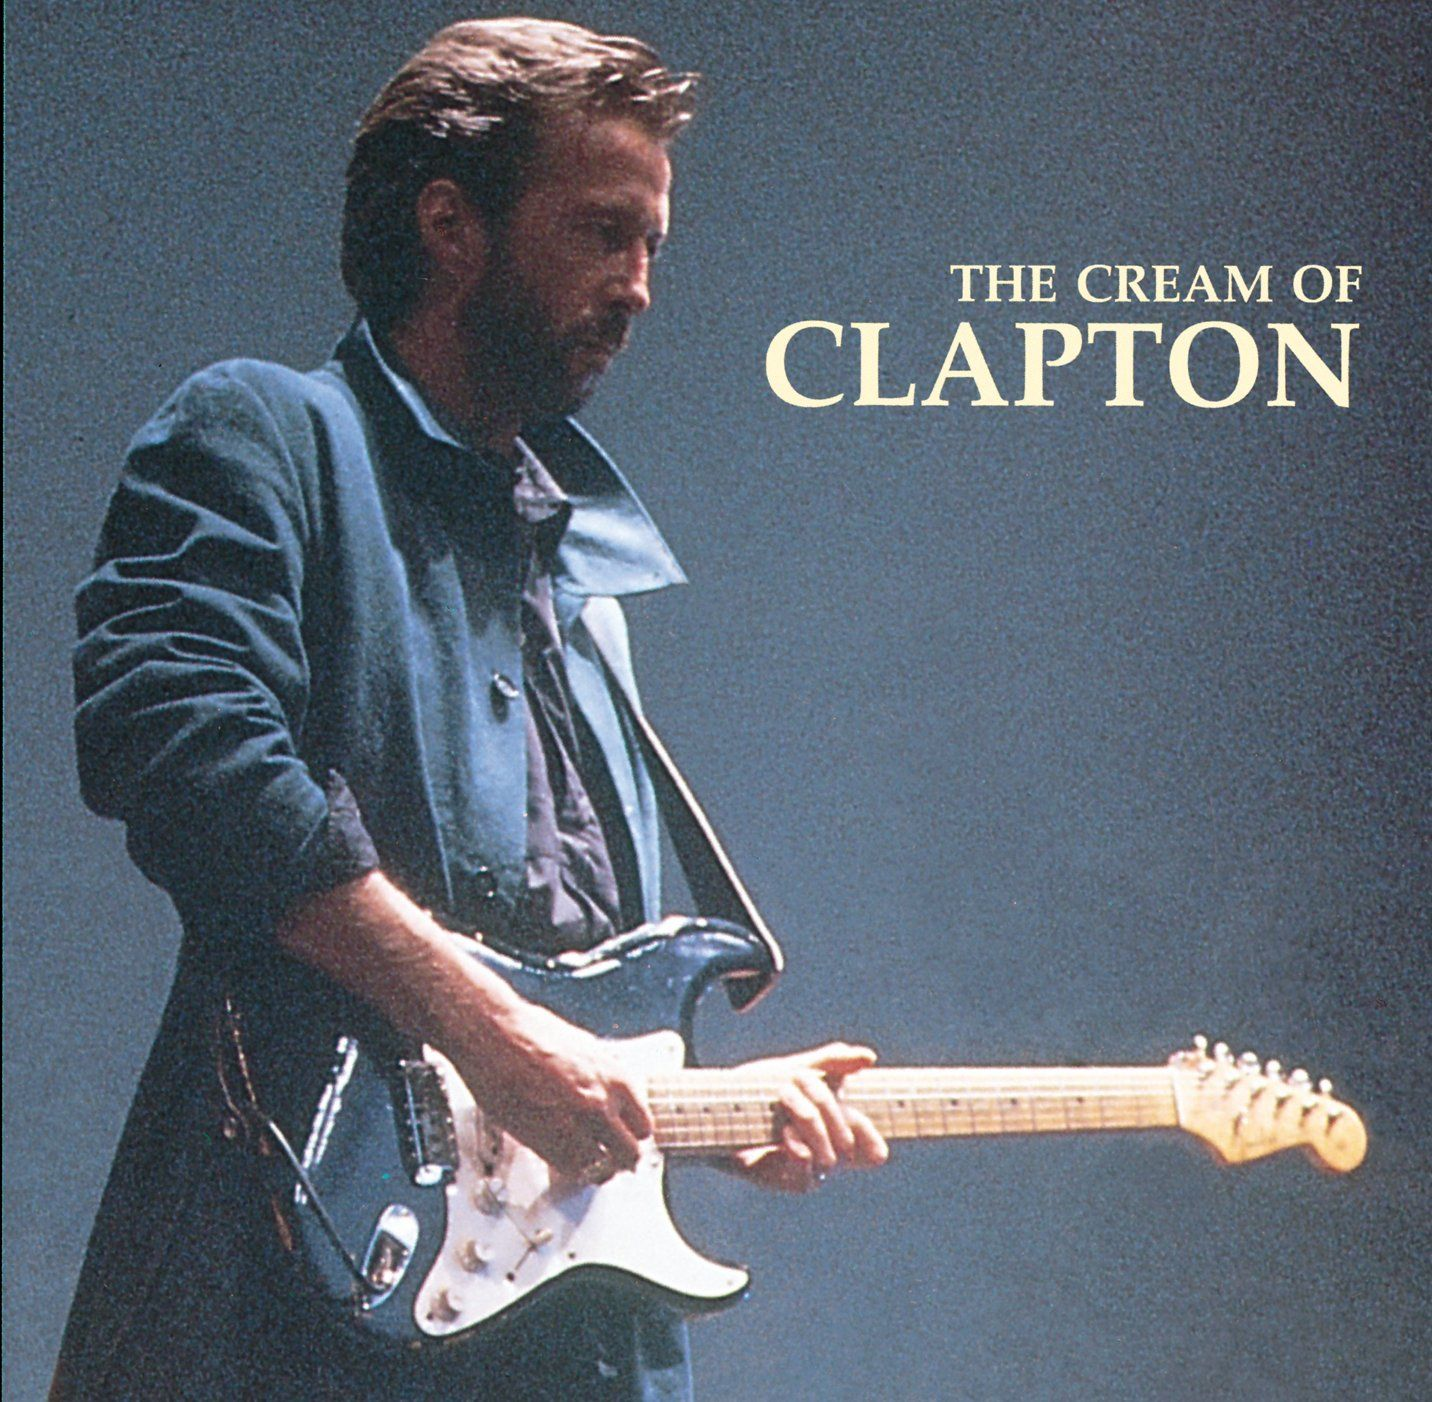 Eric Clapton - Cream of Clapton - Overstock™ Shopping - Great Deals on Hard Rock